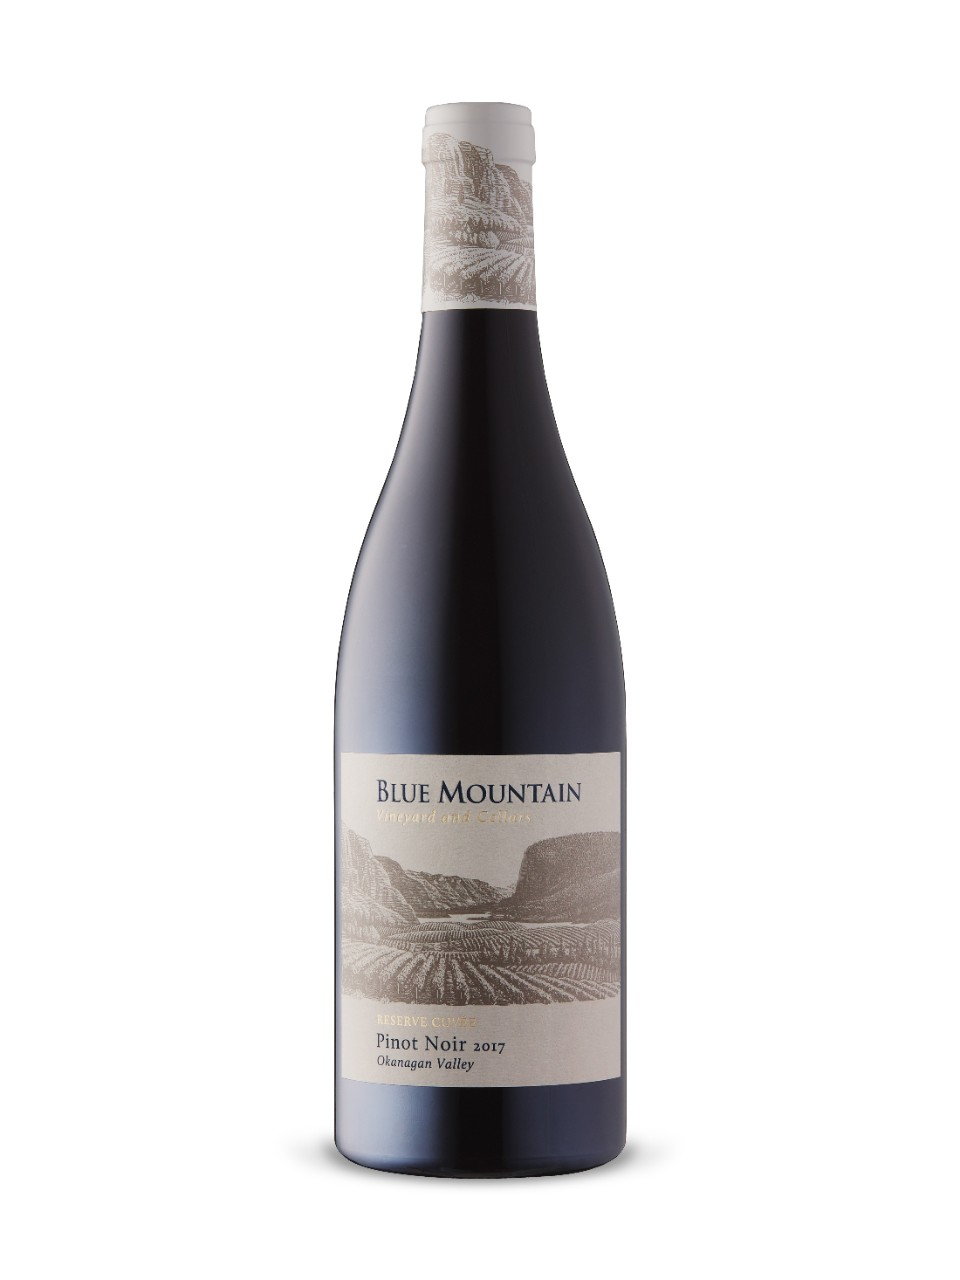 Blue Mountain Reserve Cuvée Pinot Noir 2017 from LCBO